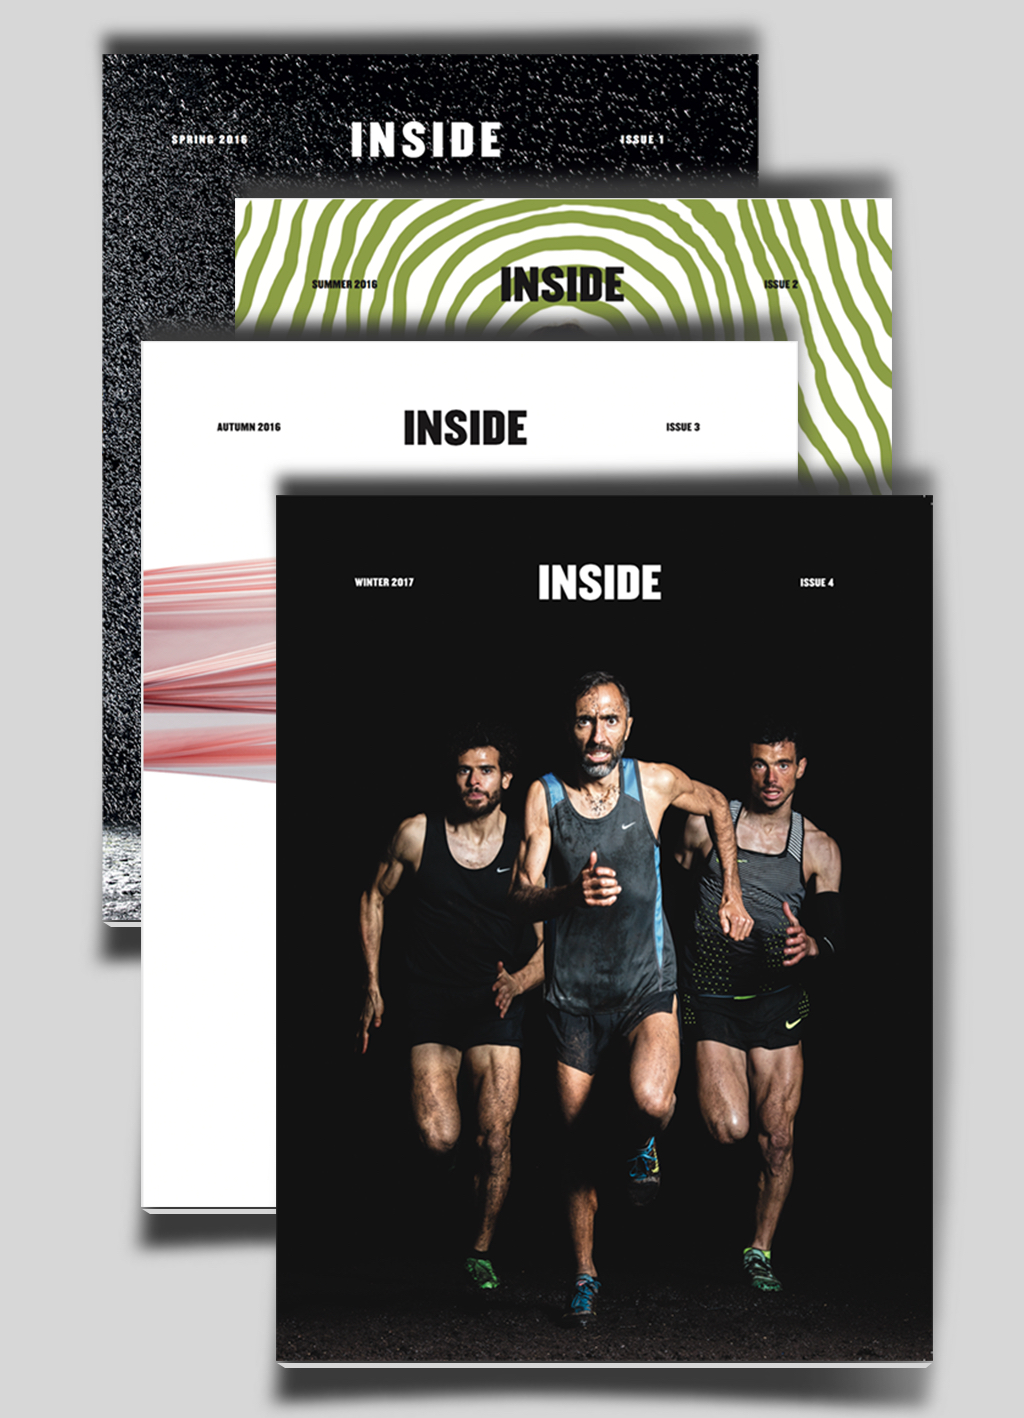 INSIDE Running as a lifestyle - Subscription (Europe)